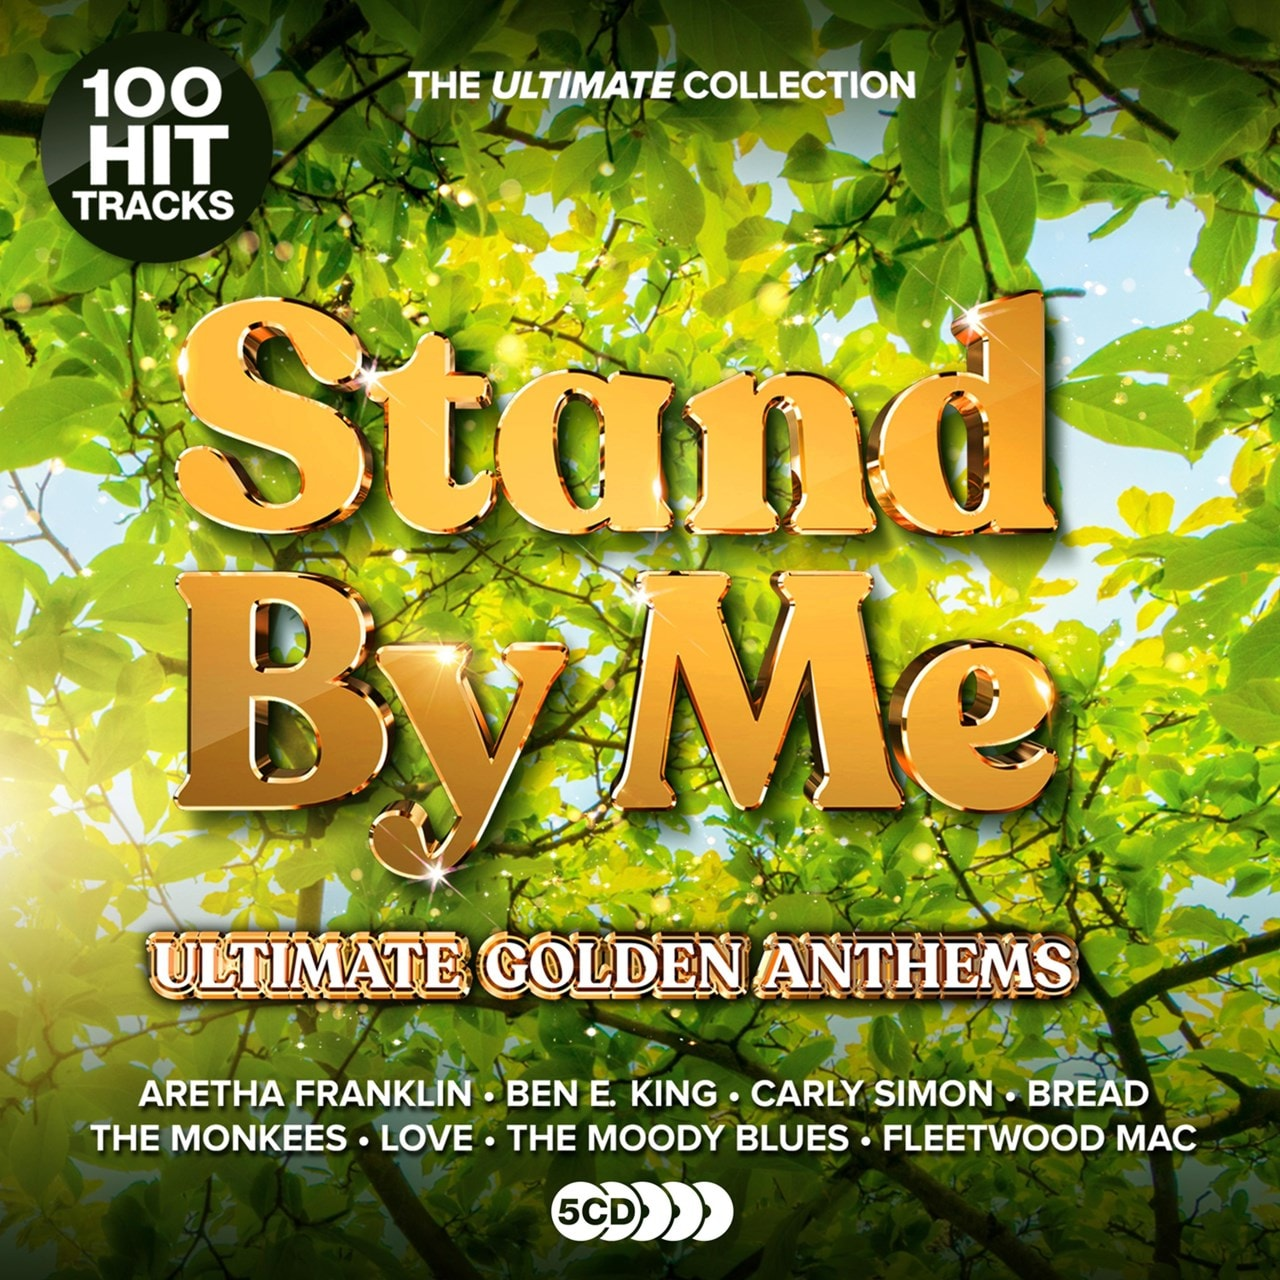 Stand By Me: Ultimate Golden Anthems - 1